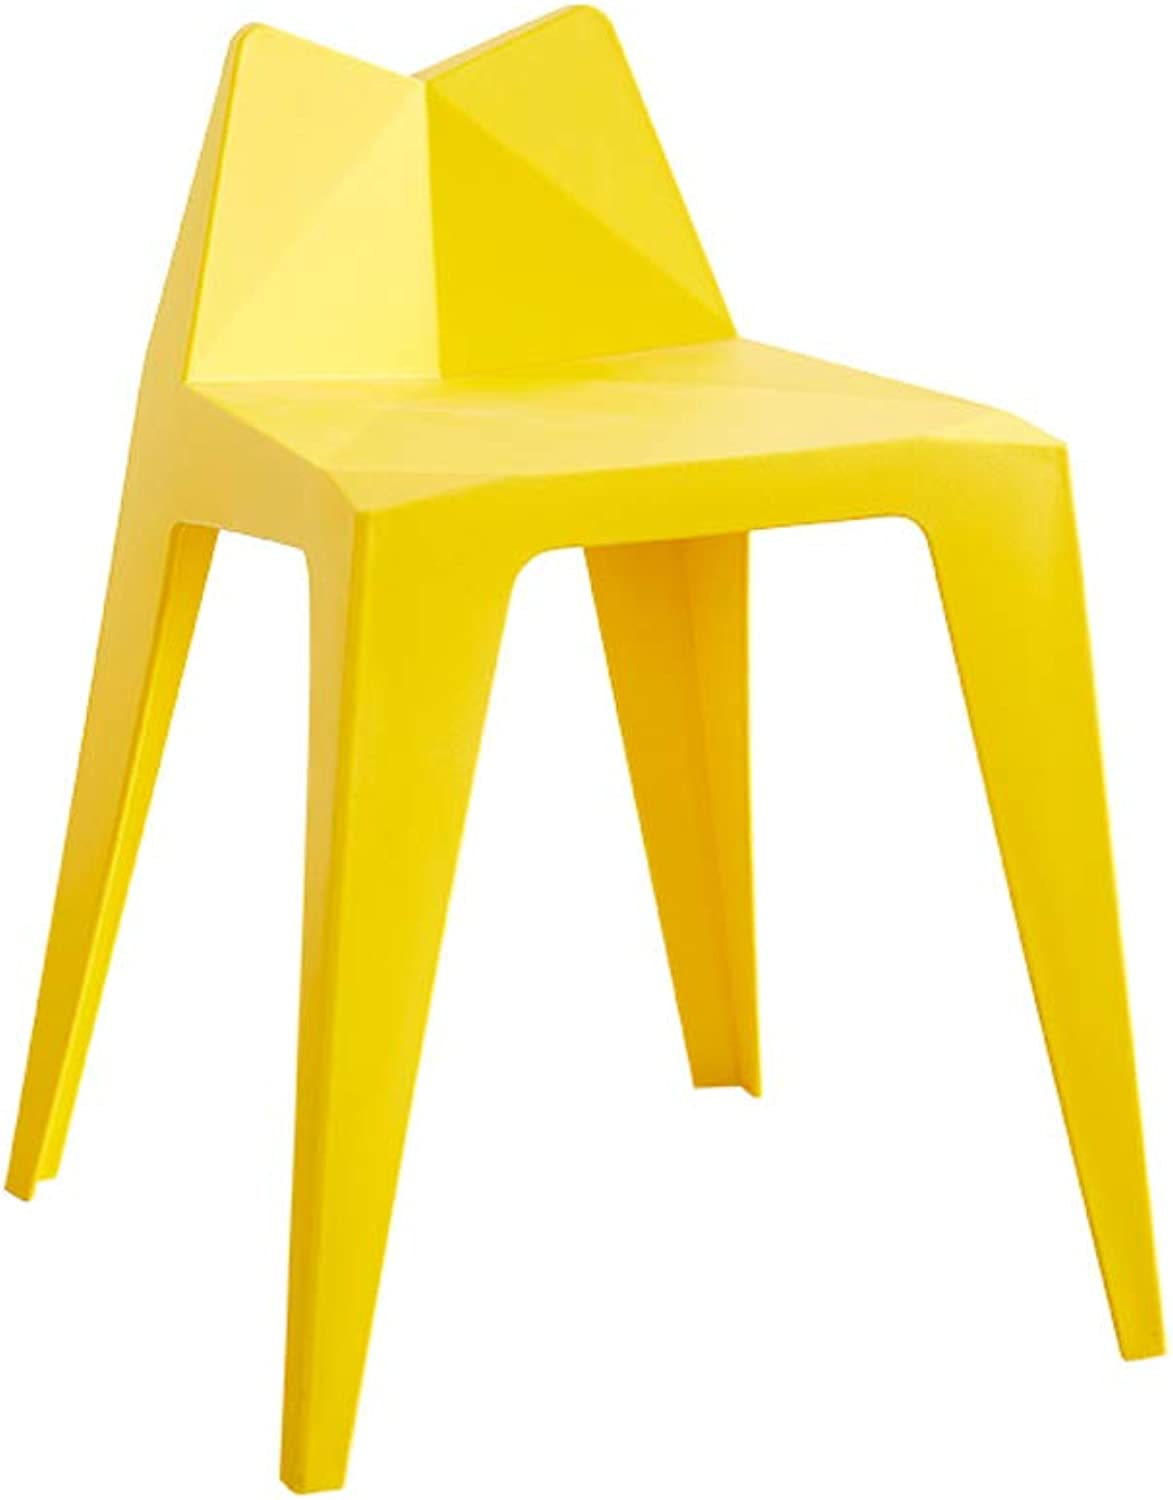 Plastic Dining Chair Living Room Home Bench, Simple Bar Stool Restaurant Table and Stool -L3534H58CM (color   Yellow)